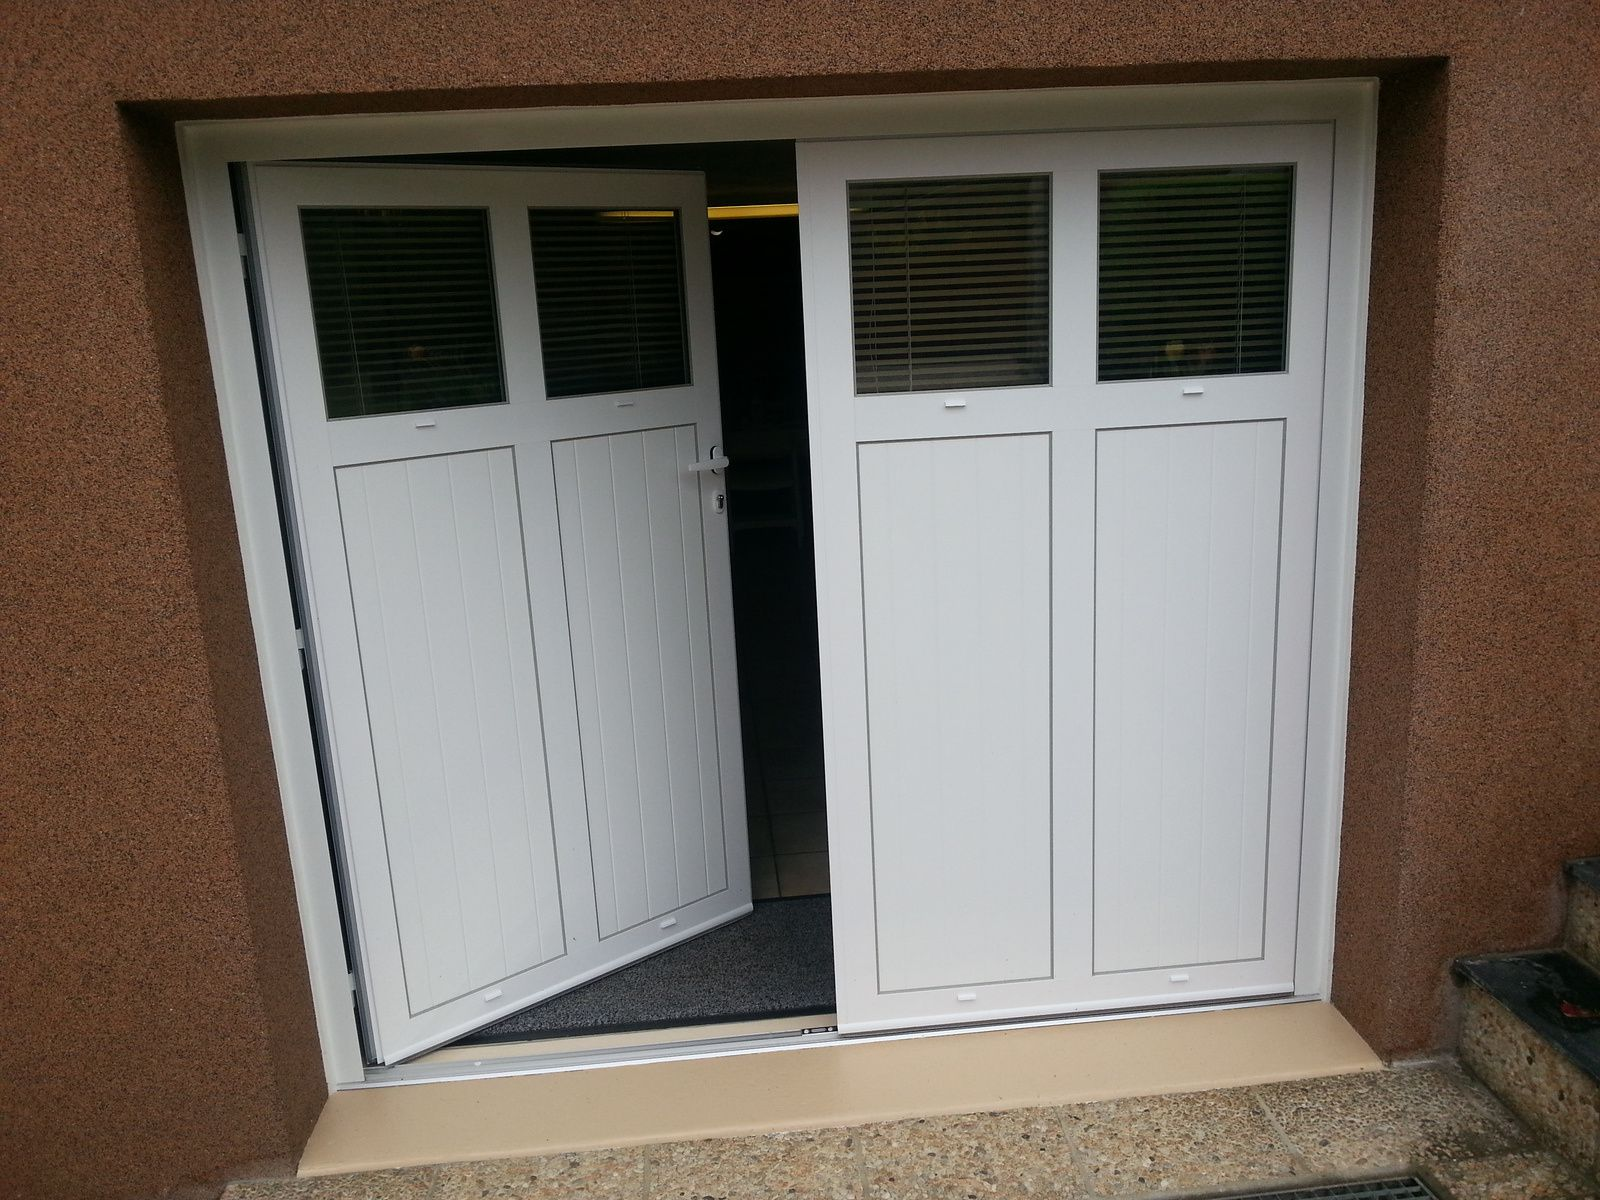 Exceptionnel porte de garage battante renaa conception - Porte garage aluminium ...